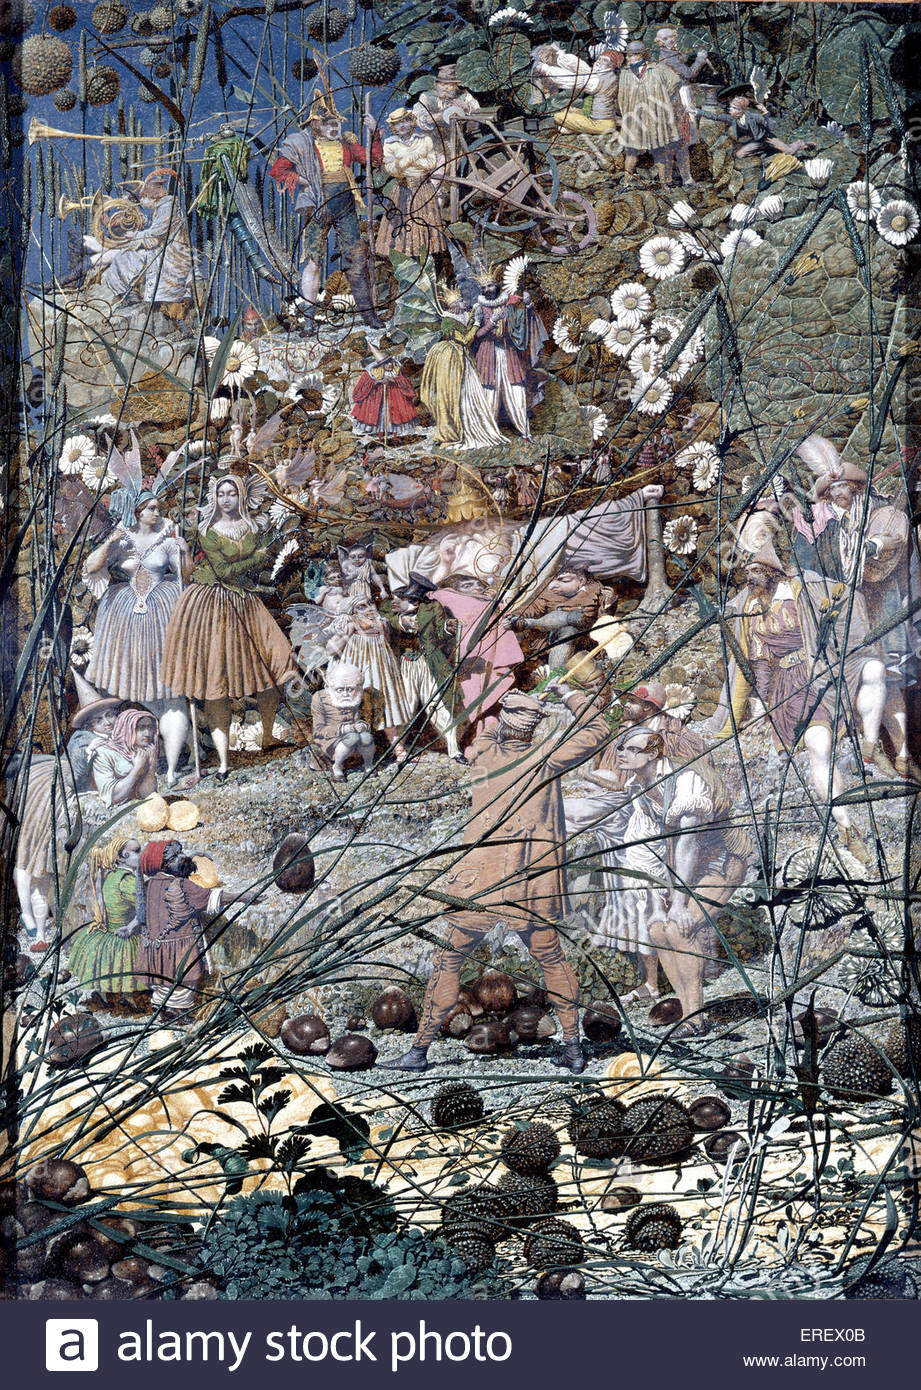 The Fairy Feller's Master-Stroke by Richard Dadd, 1855 - 64.  Oil on canvas  540 x 394 mm (support). Painting - Stock Image